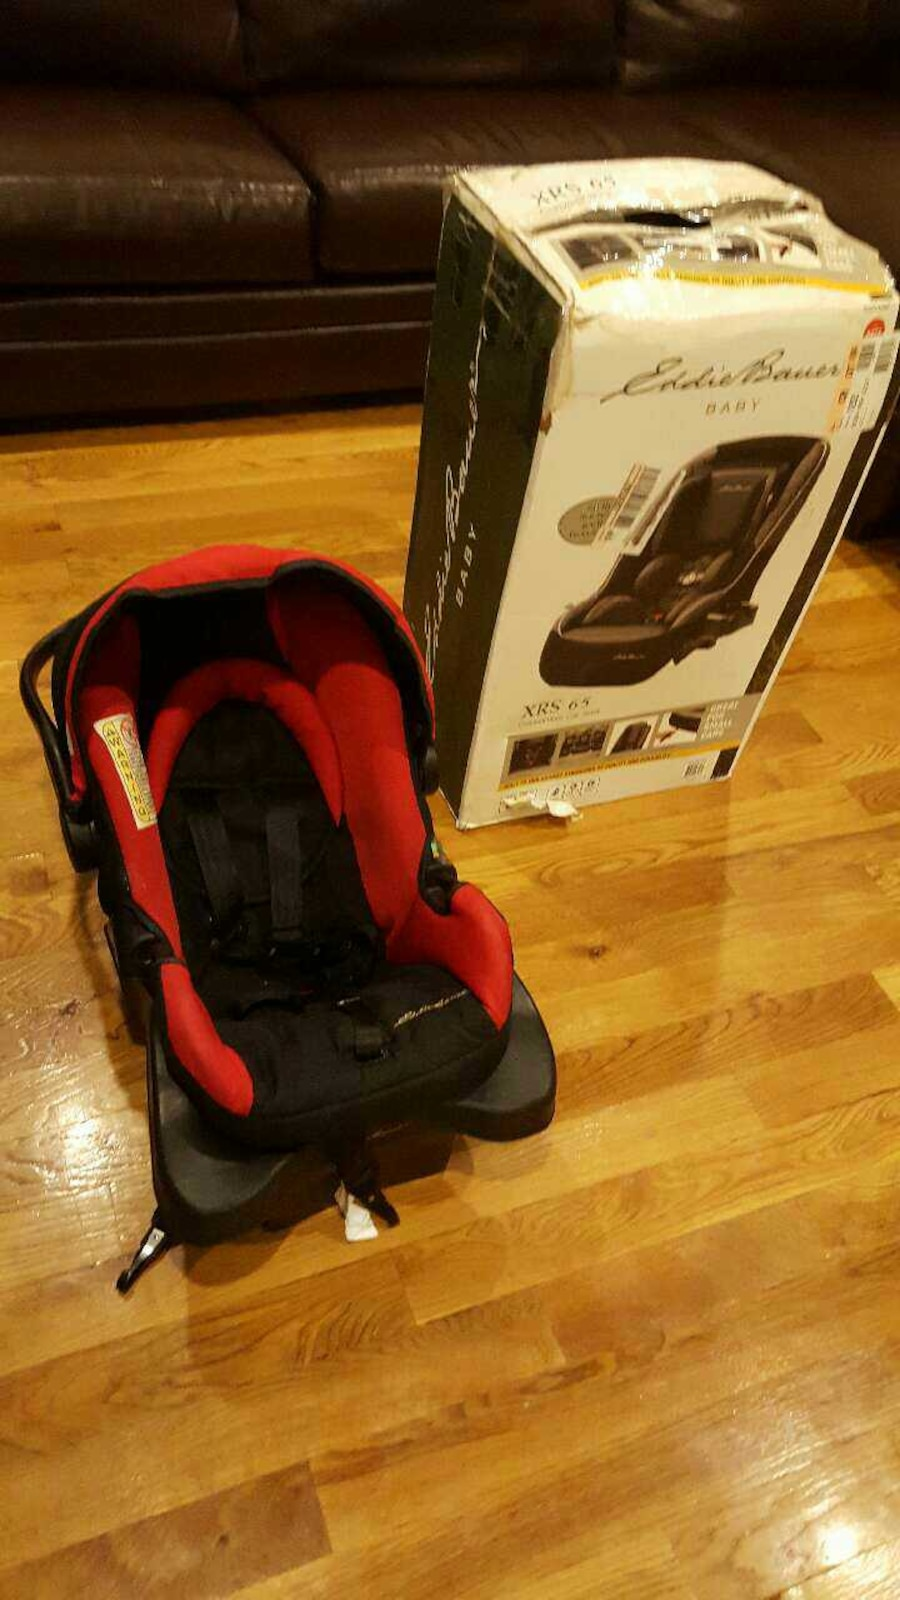 Eddie Bauer Stroller With Infant Car Seat And Base In New